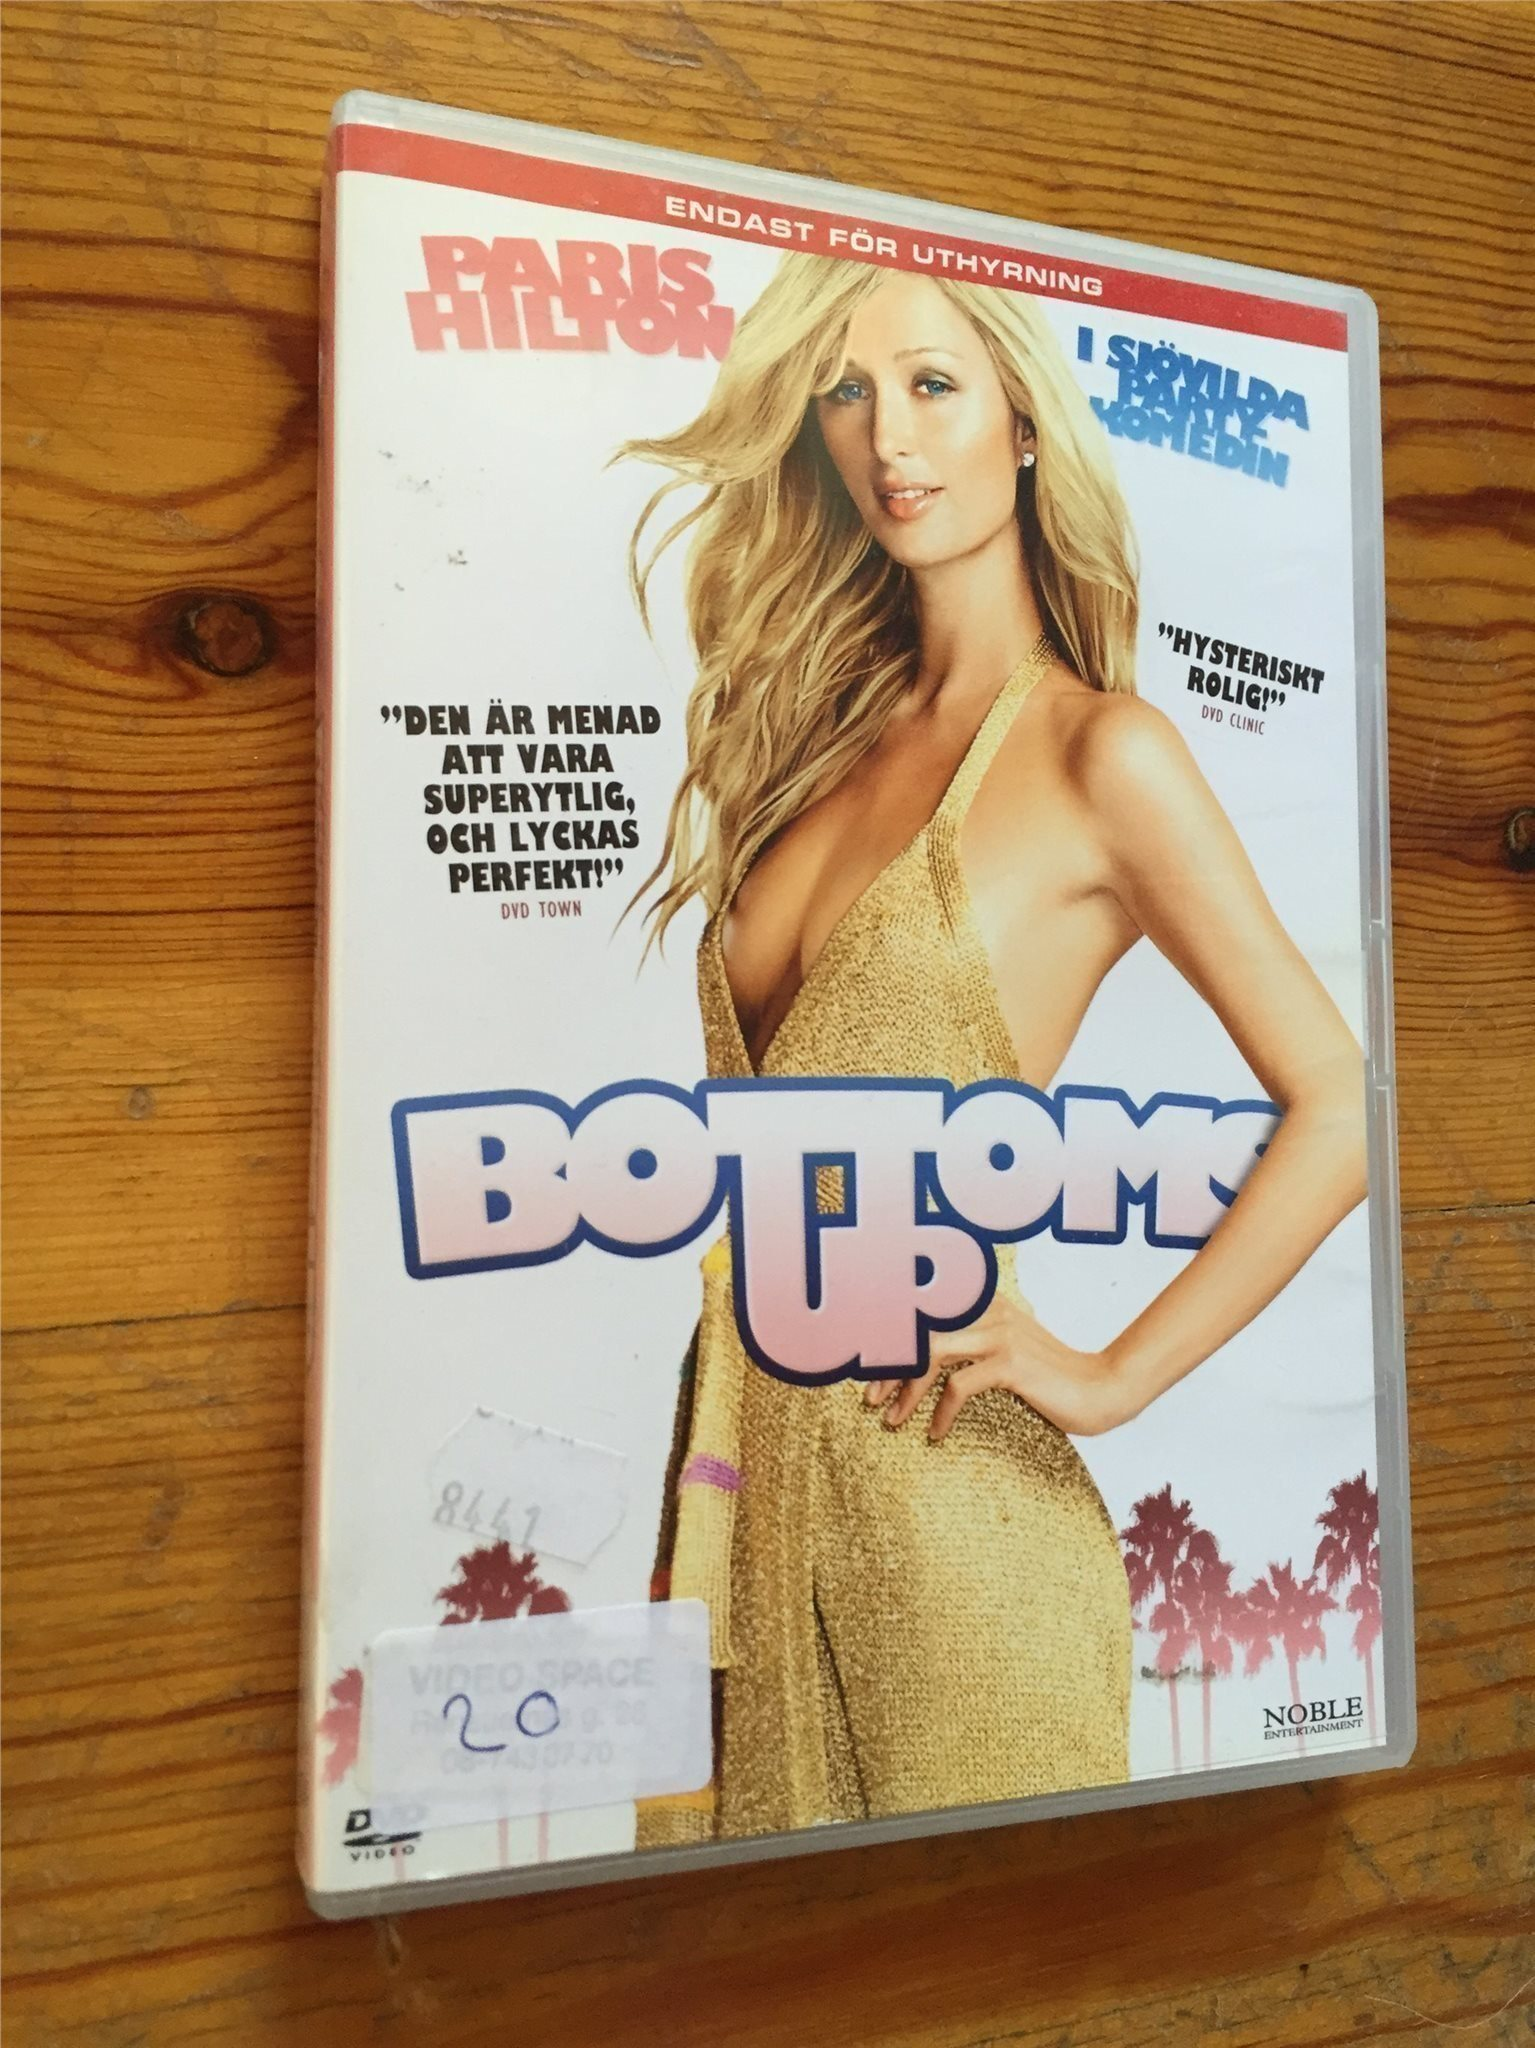 Bottoms up - Paris Hilton - (original DVD)